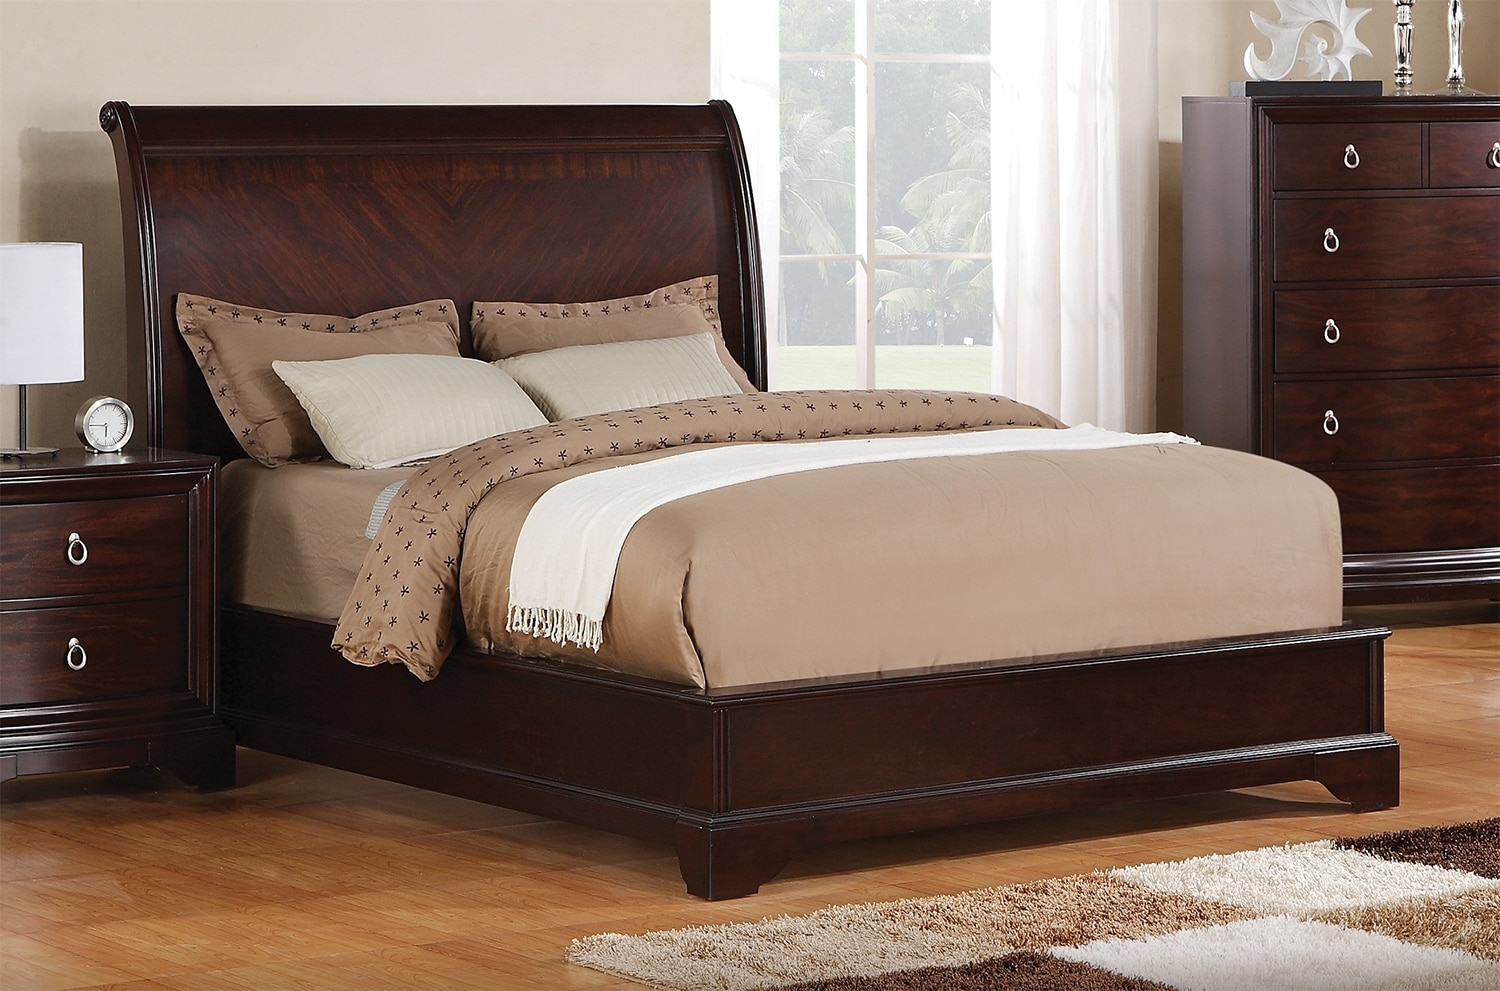 Bedroom Furniture - Noah Queen Bed - Dark Cherry